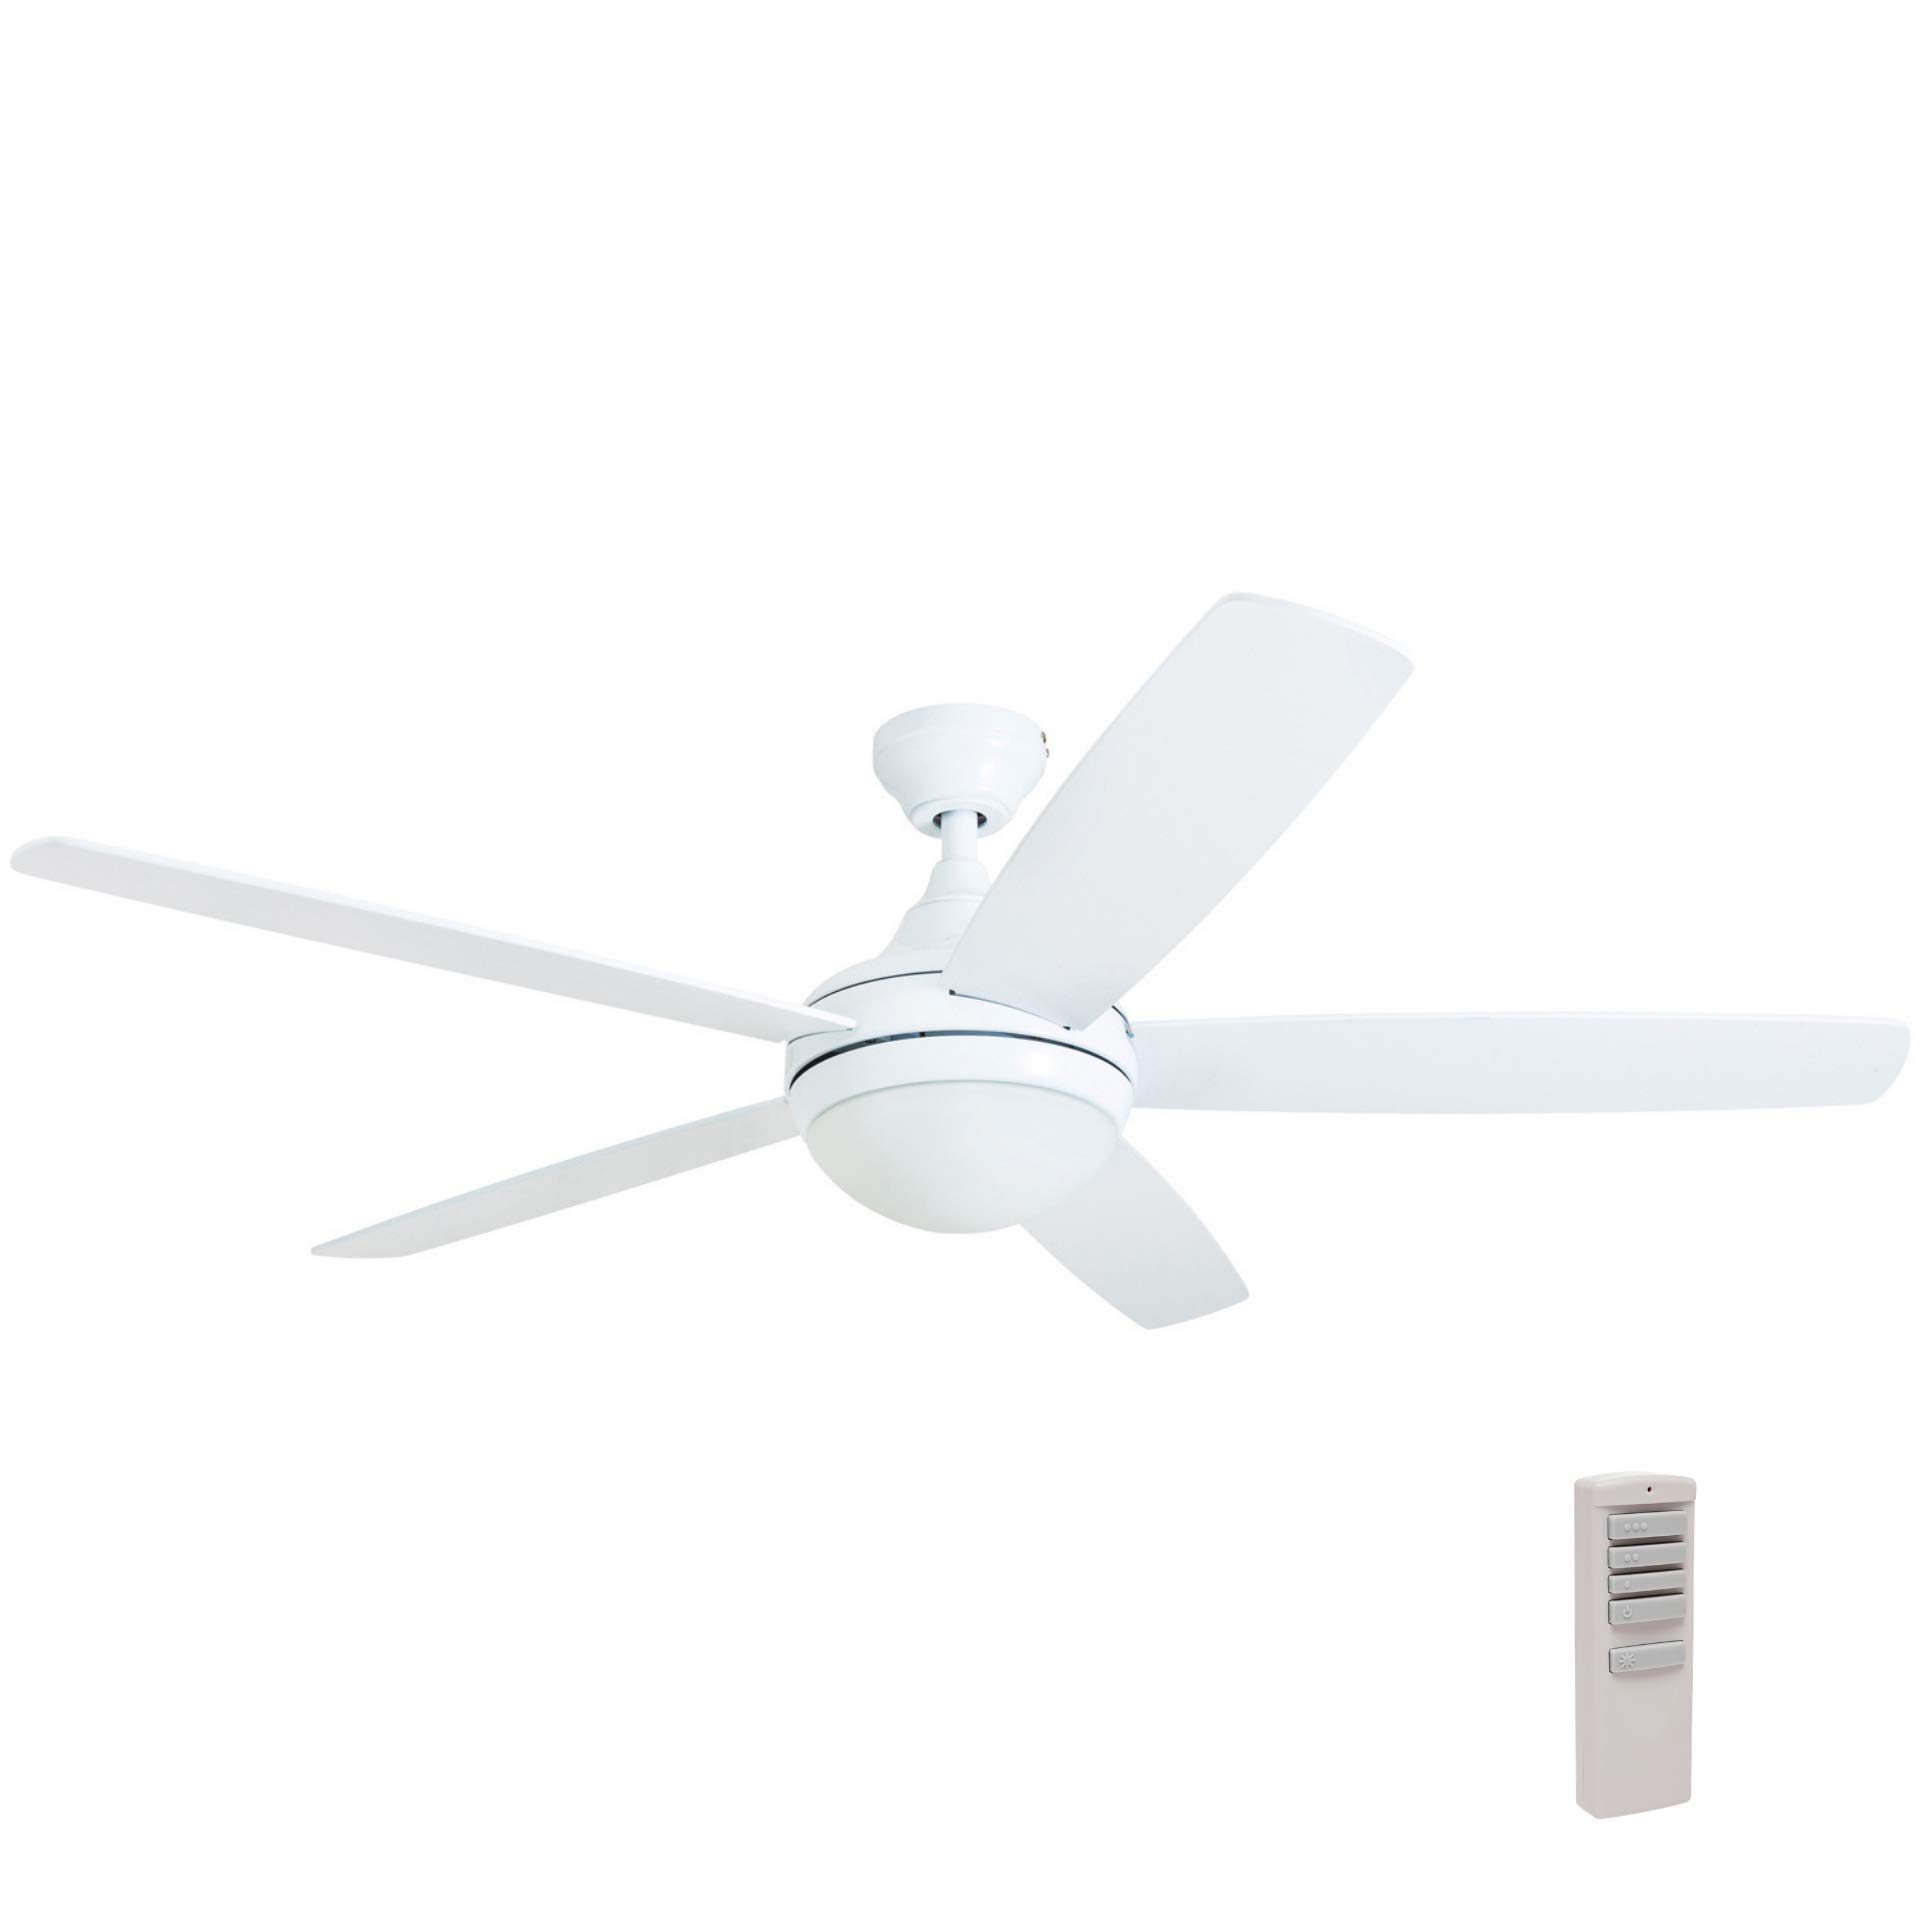 Prominence Home 80094-01 Ashby Ceiling Fan with Remote Control and Dimmable Integrated LED Light Frosted Fixture, 52'' Contemporary Indoor, 5 Blades White/Grey Oak, Farmhouse White